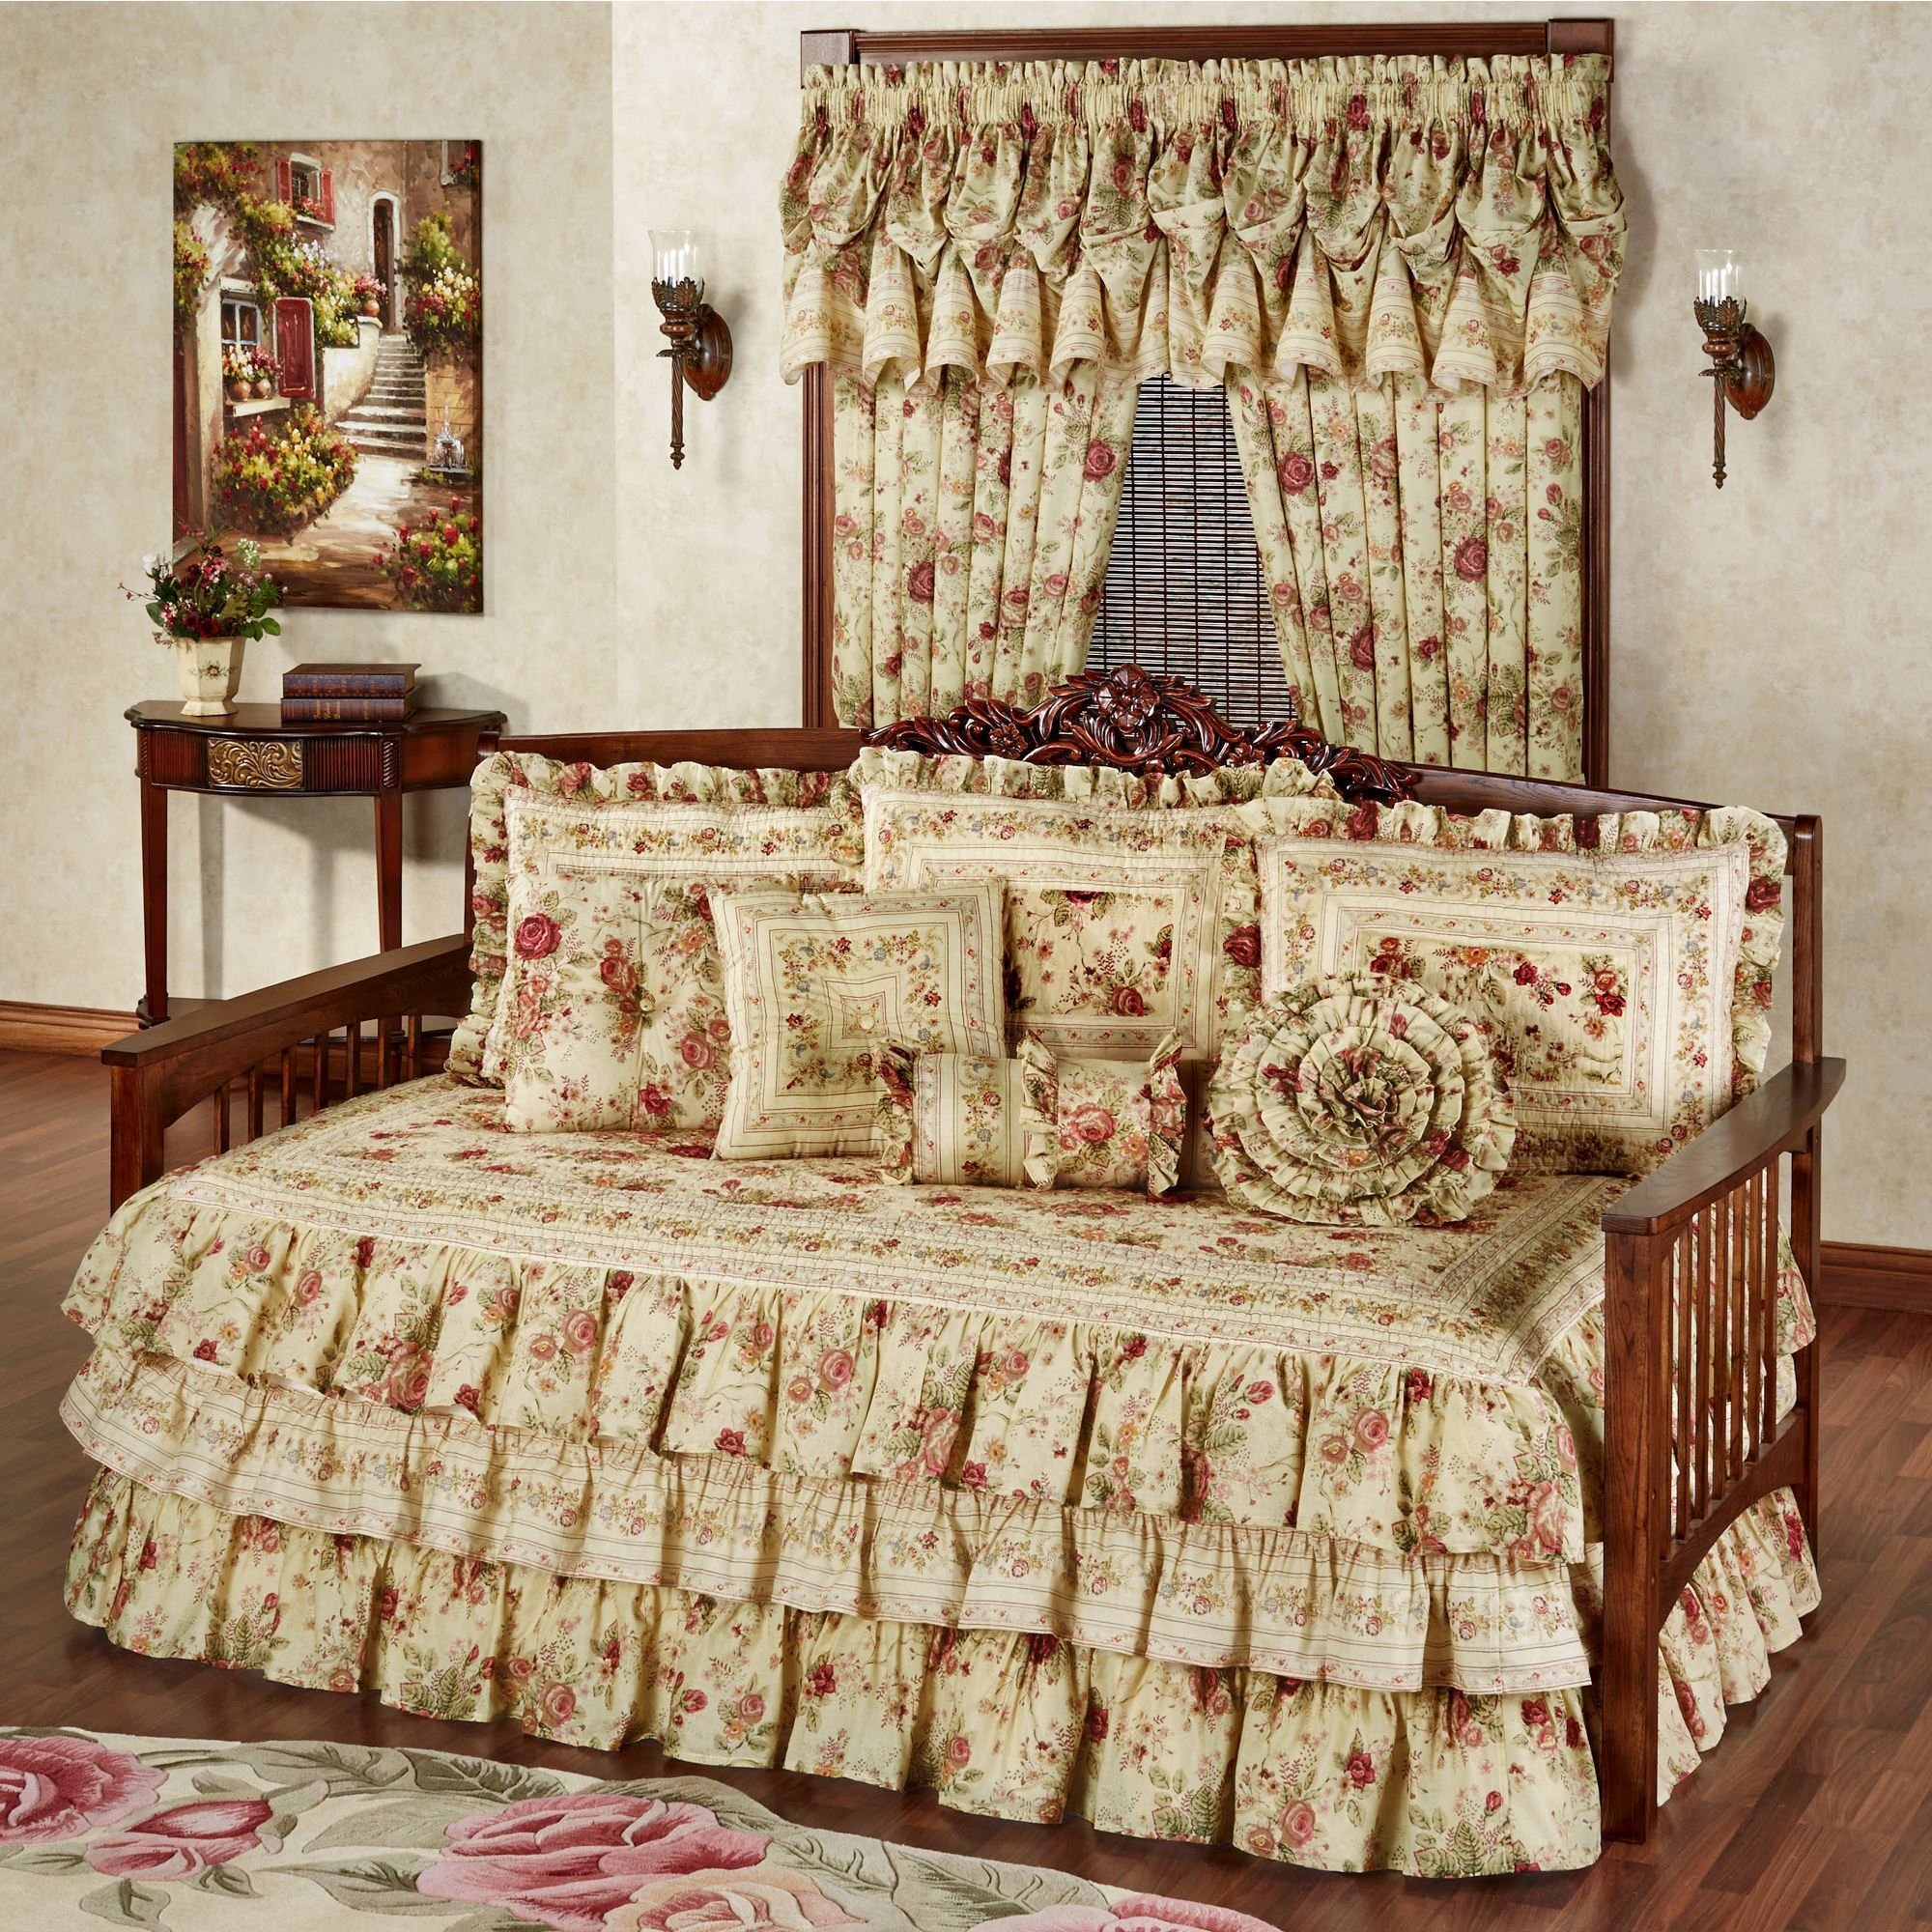 daybed bedding sets photo - 9